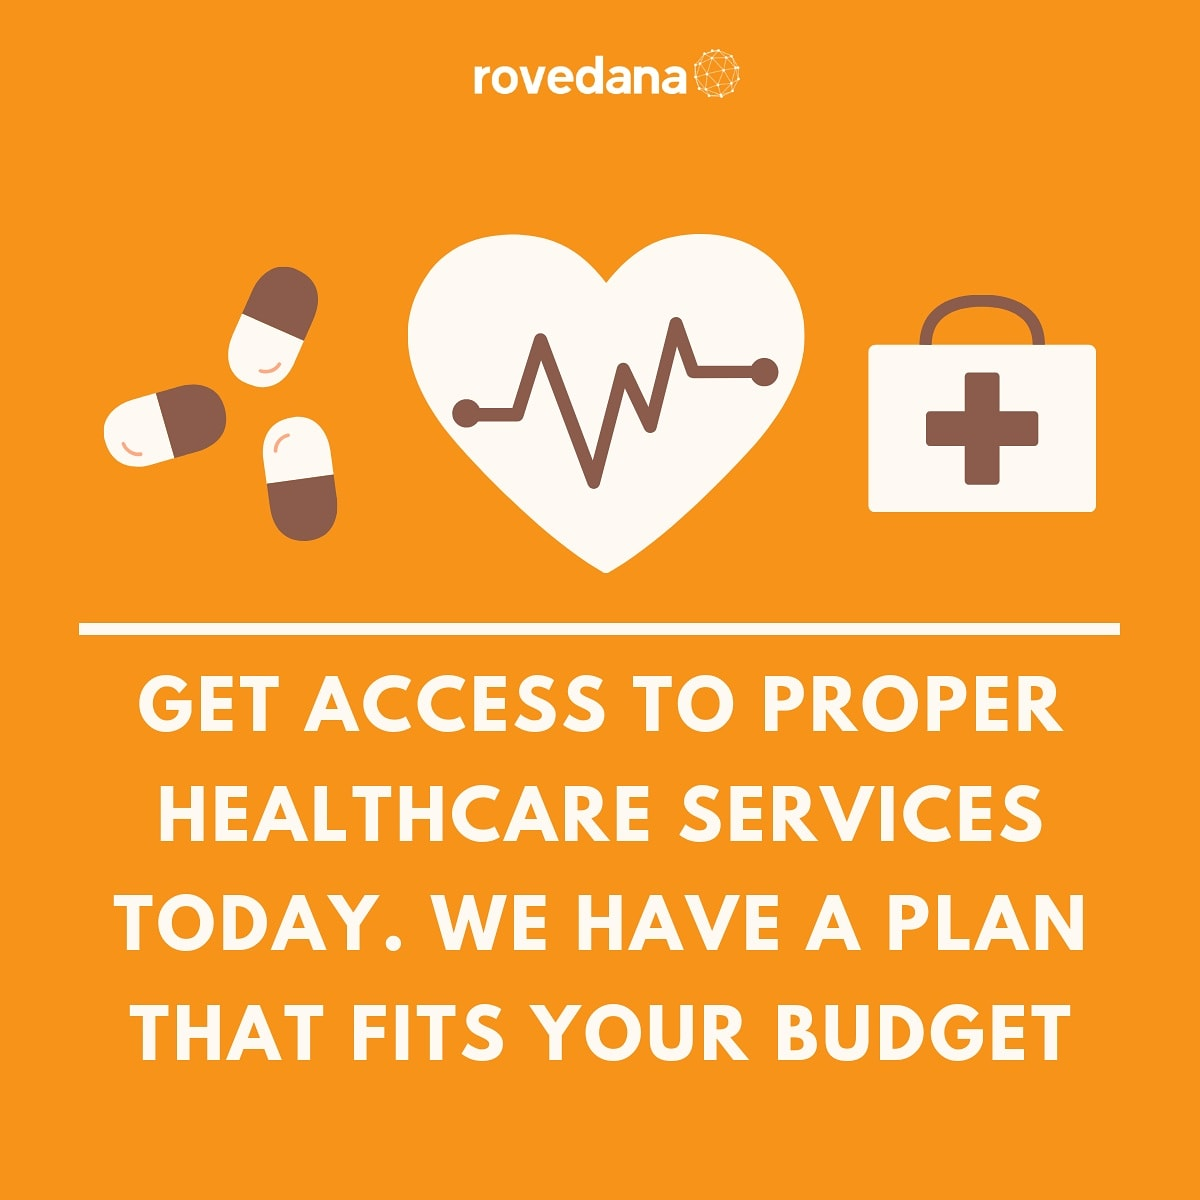 Get Health Insurance tailored for each employee, we have a plan for everyone. Send us a message today.  Get RoHealth, Get Covered  #hrprofessional #hmo #humanresources #businessowner #employer #employee #selfemployed #stayhealthy #staysafe #RoHealth #rovedana #RoCares https://t.co/rkvw0NmFcV